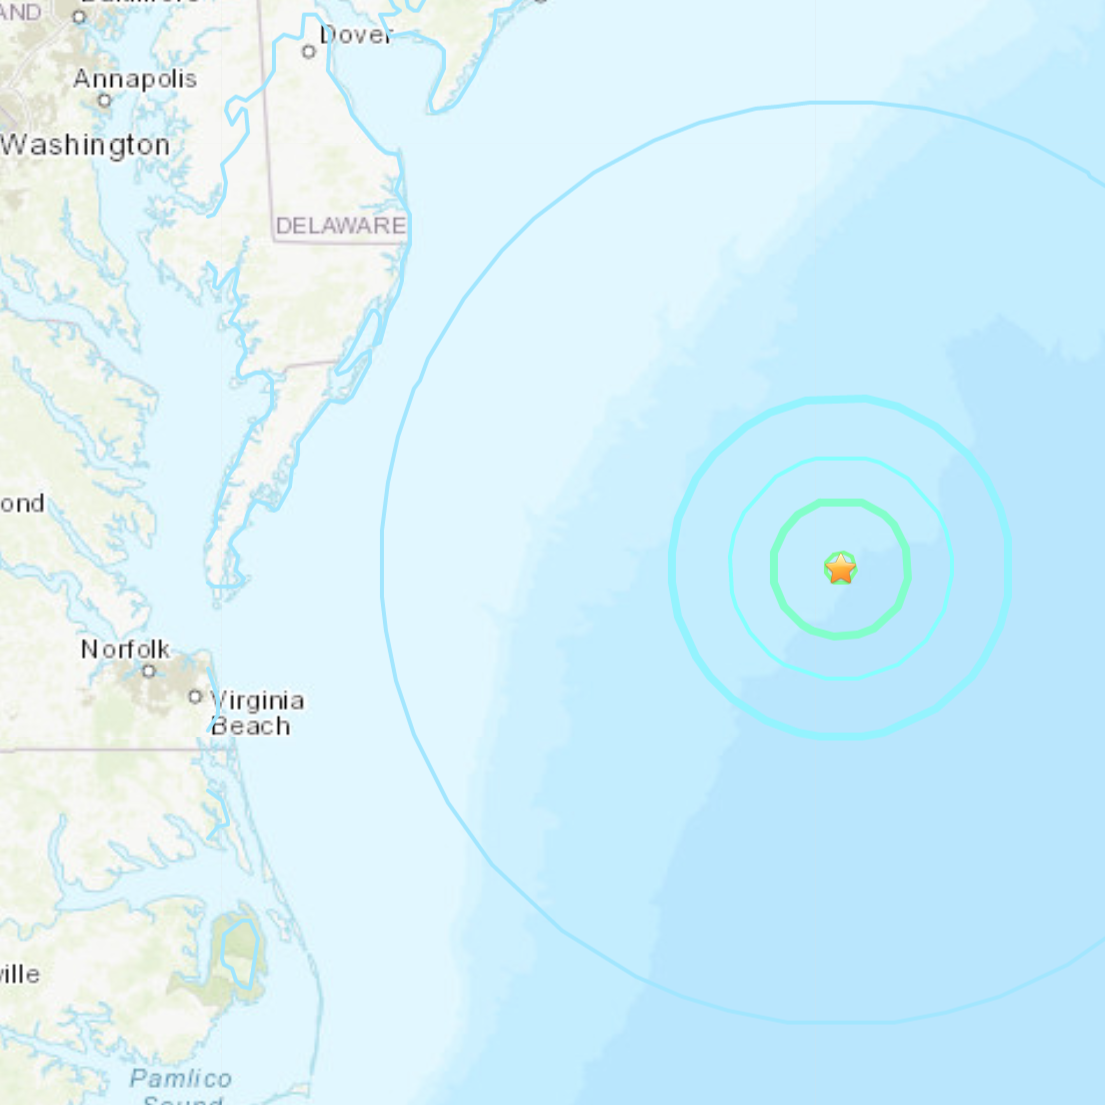 Ocean City earthquake: 4.7 magnitude quake reported off Maryland coast